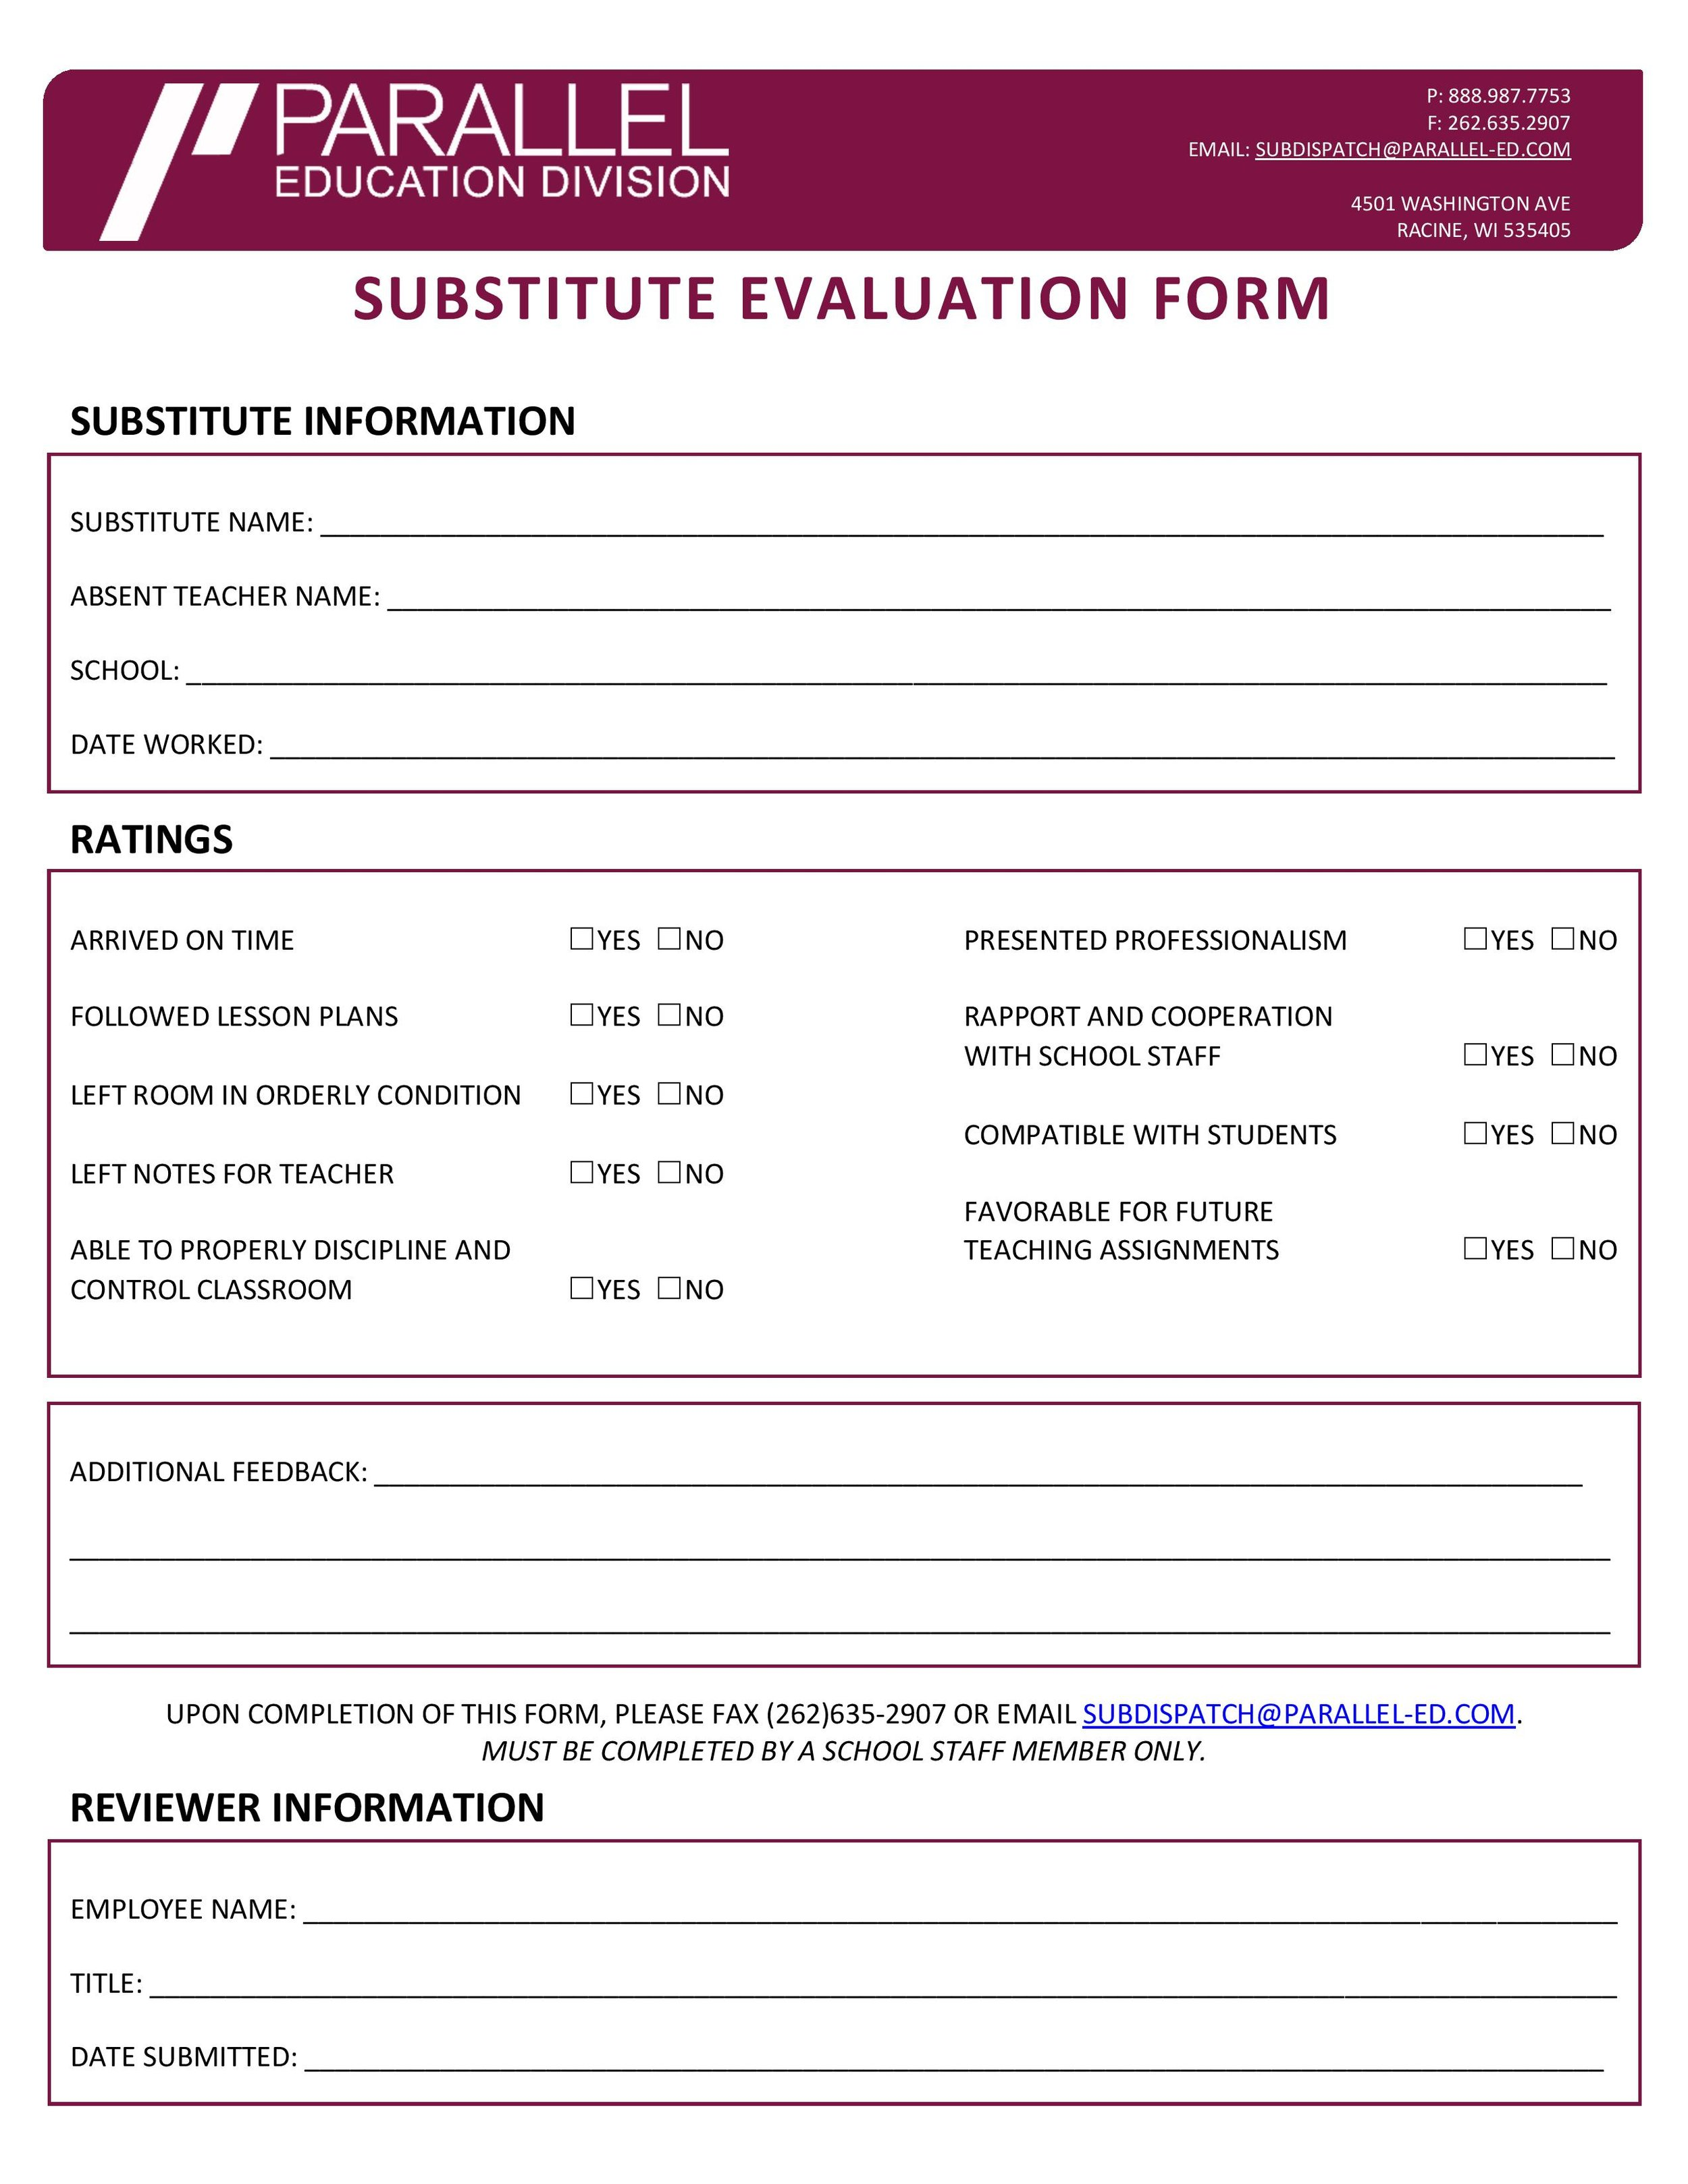 Parallel Education Division Substitute Evaluation Form